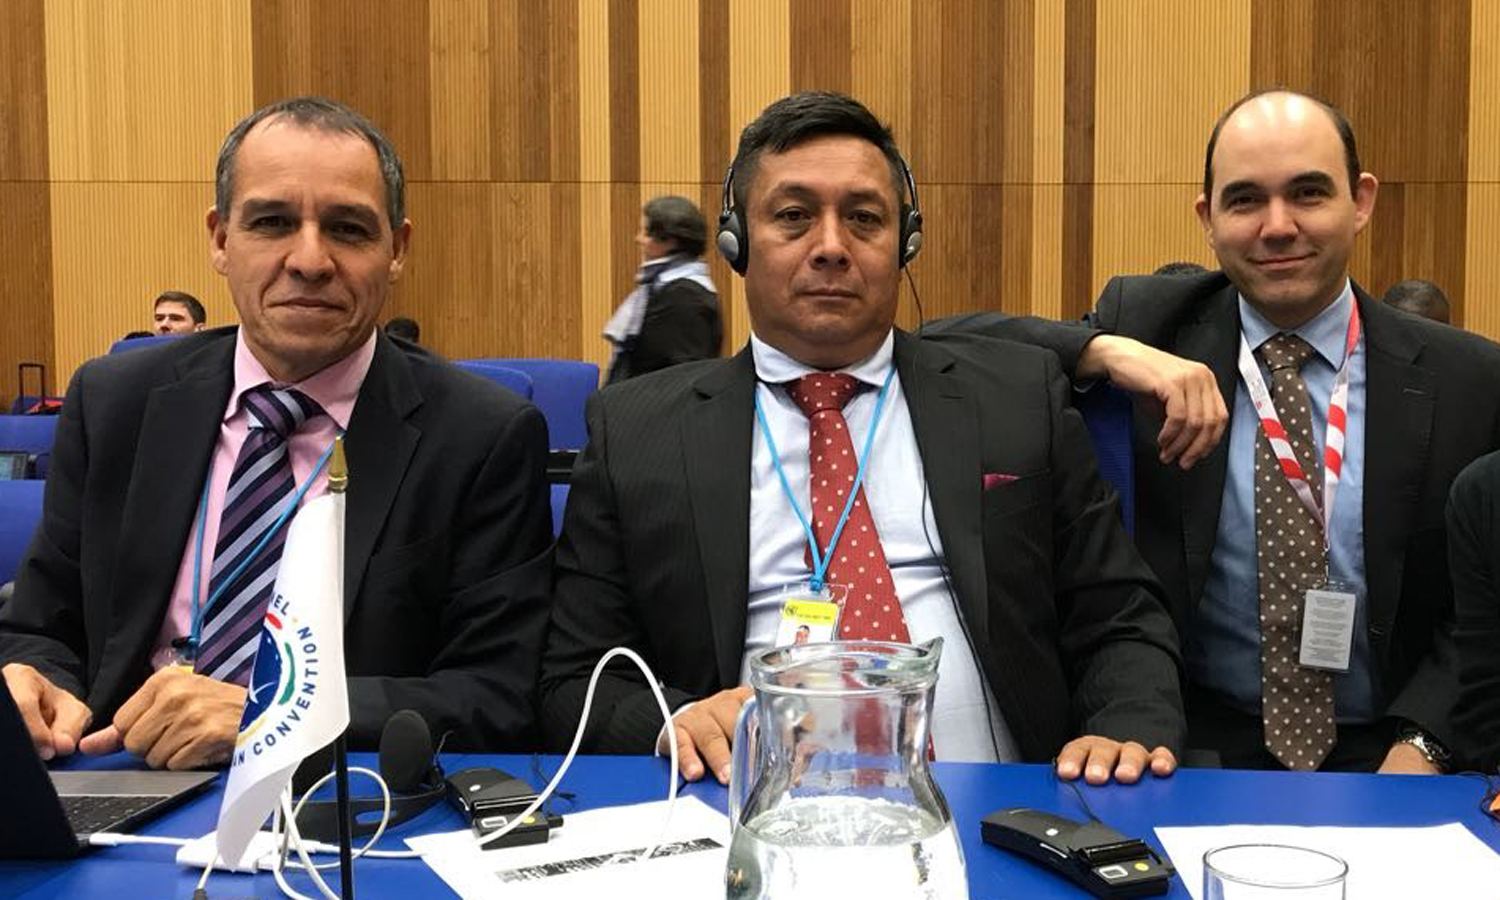 Adelmo, center, attends the Sixteenth Meeting of the States Parties with the support of HI and Polus Center, Dec 18-21, 2017   Vienna, Austria